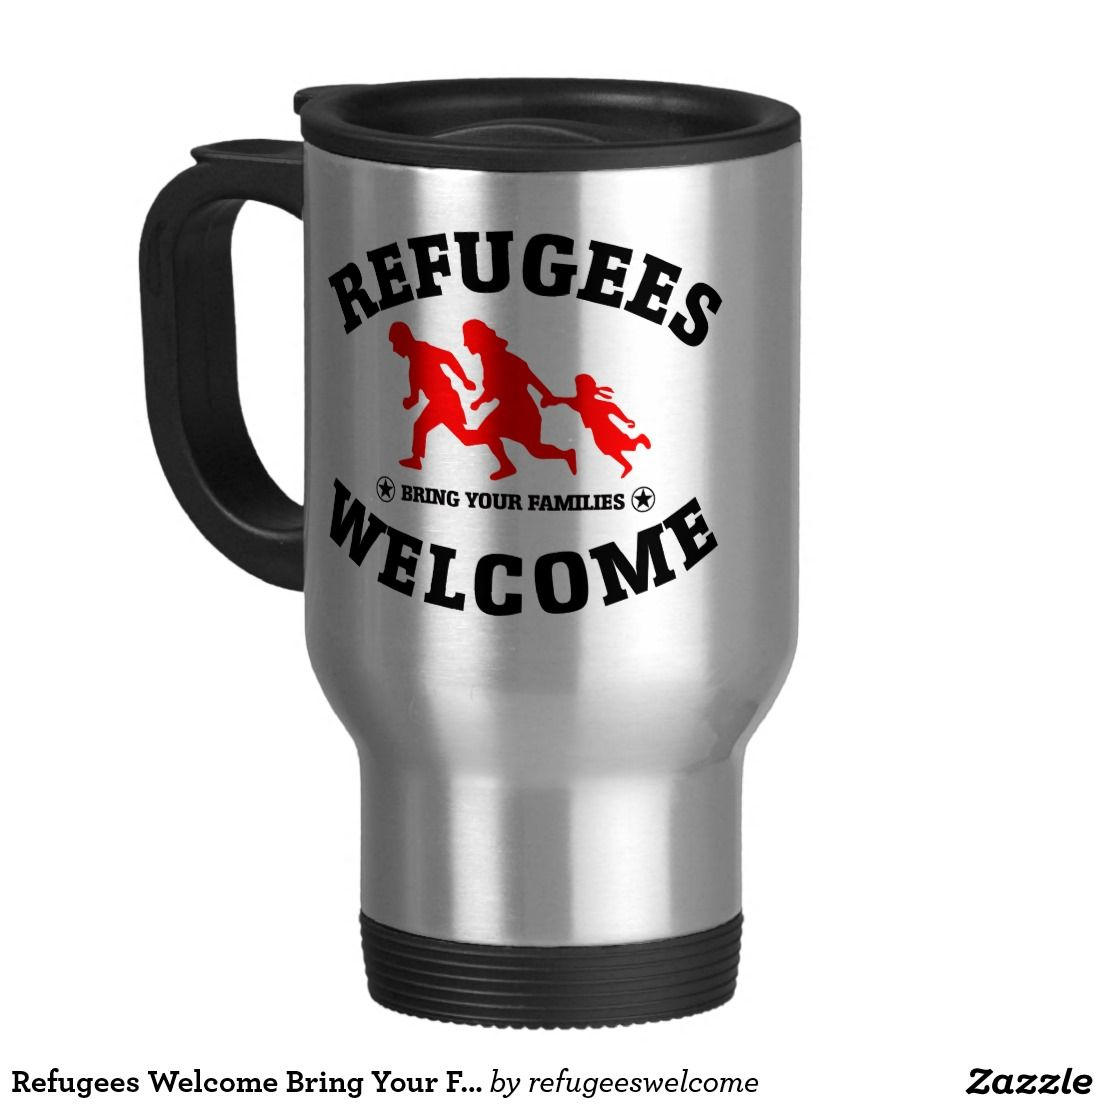 Refugees Welcome Bring Your Families 15 Oz Stainless Steel Travel Mug #refugees #refugeeswelcome #refugeecrisis